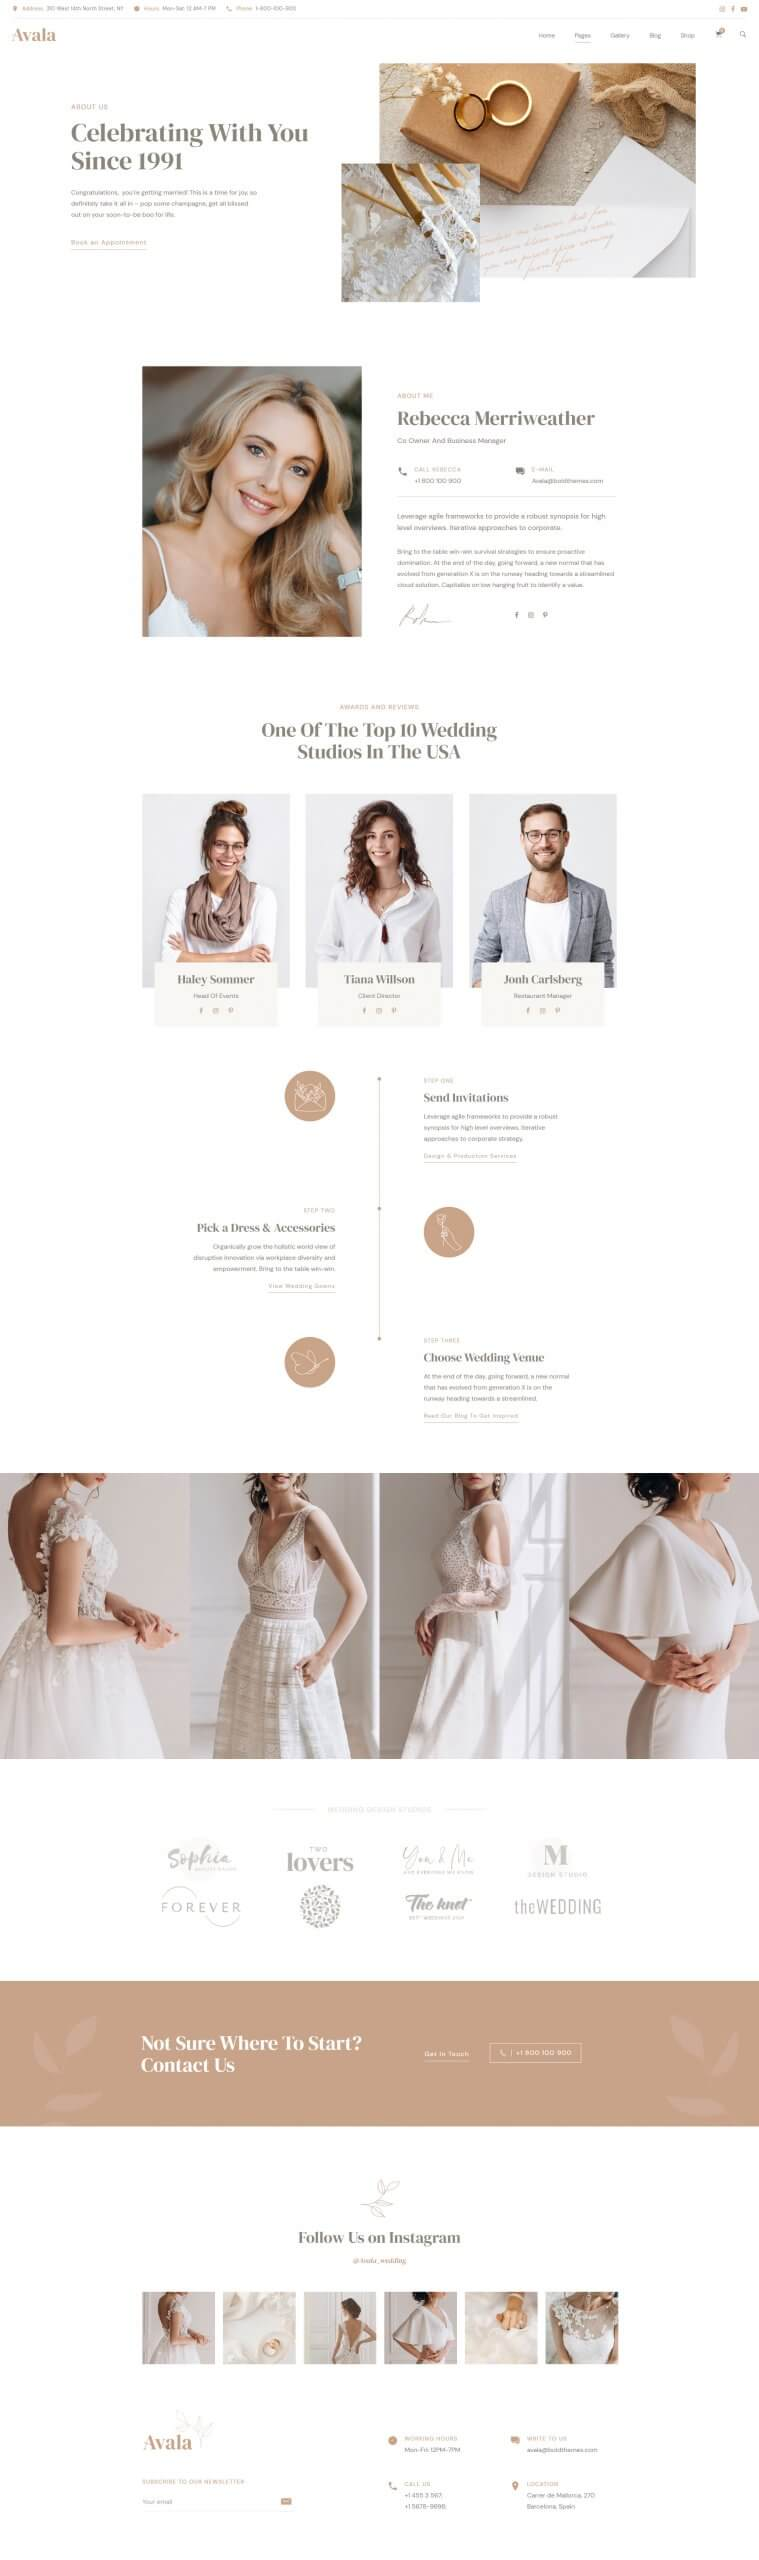 http://avala.bold-themes.com/wp-content/uploads/2021/02/Spring-About-Us-scaled.jpg